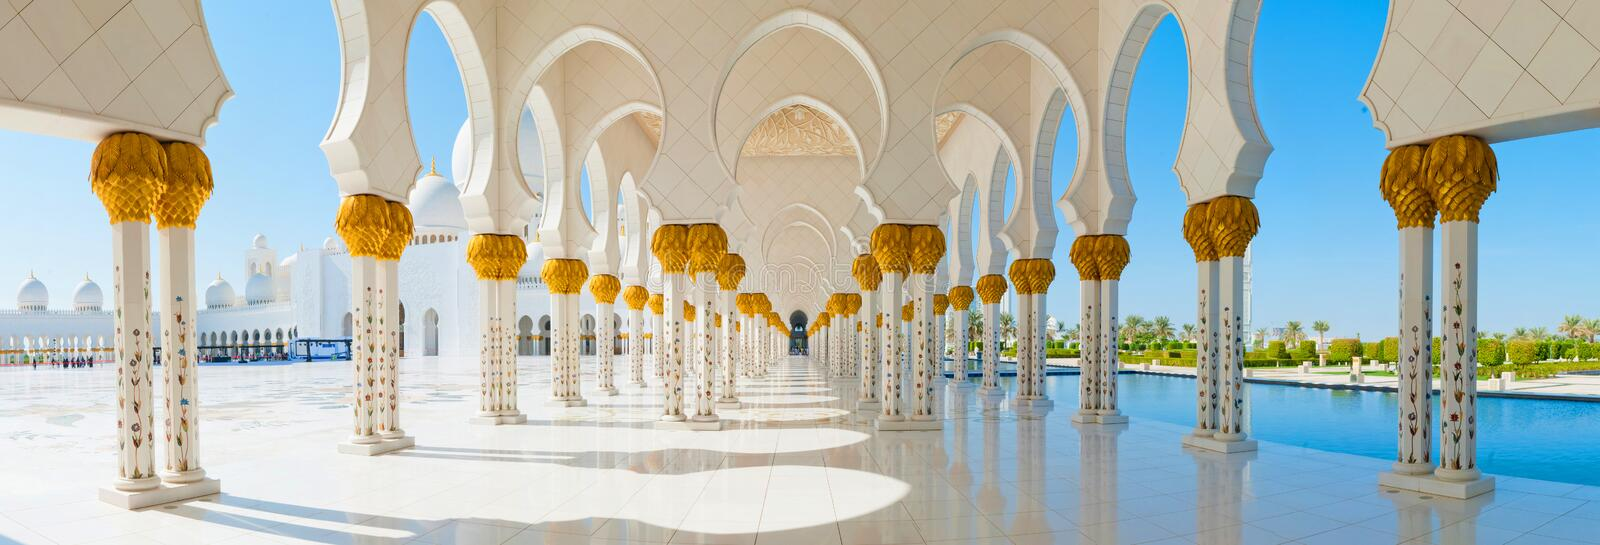 Sheikh Zayed Mosque fotografia stock